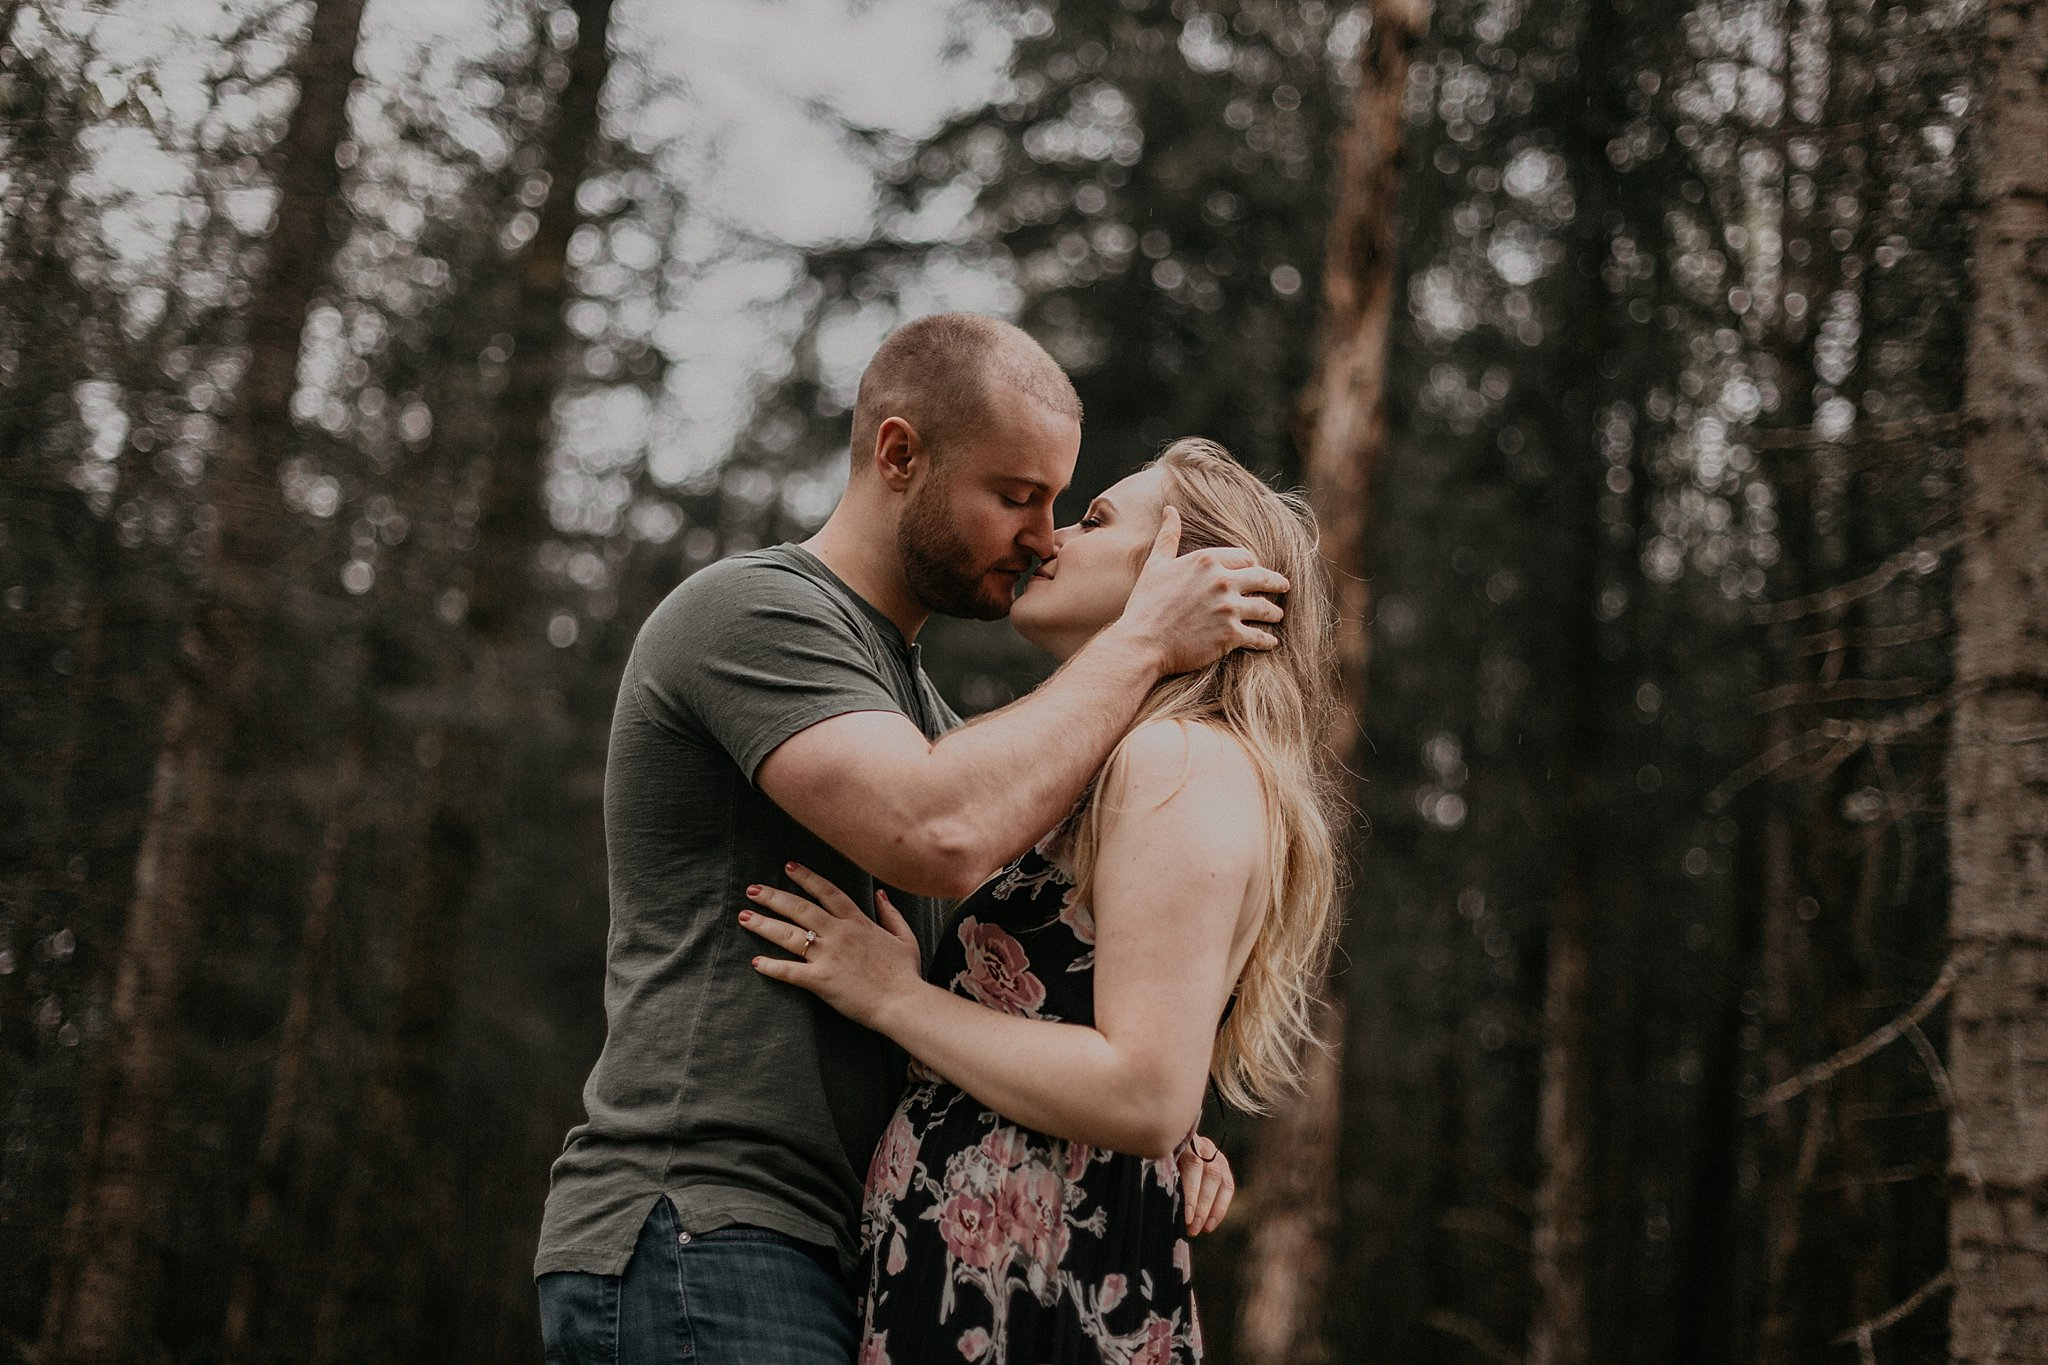 samantha_mcfarlen_bellingham_washington_engagement_photography_seattle_wedding_photographer_0315.jpg